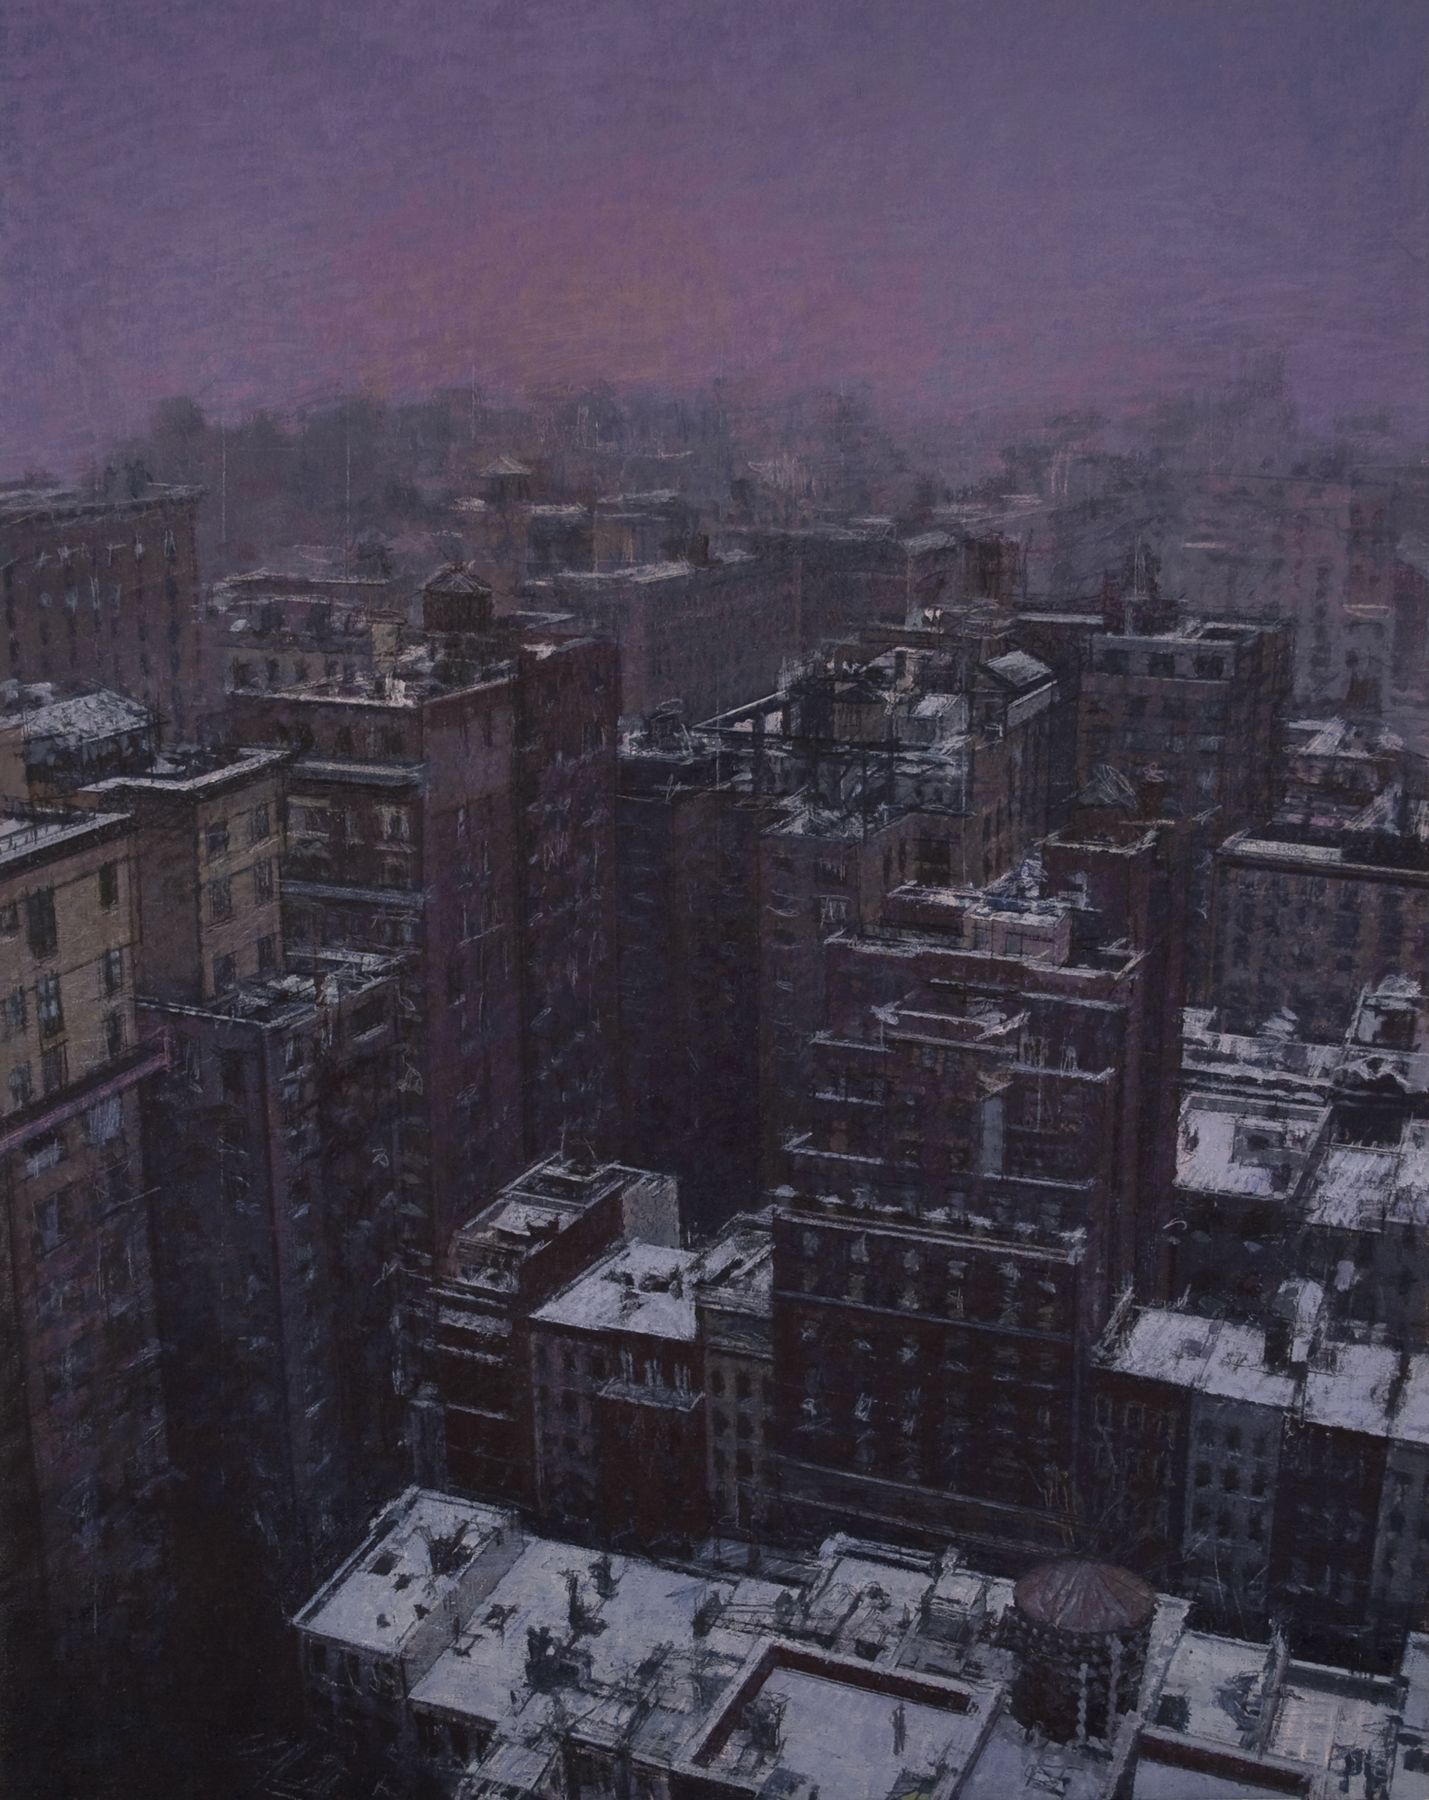 Bernardo Siciliano, The Storm (SOLD), 2011, oil on linen, 43 1/2 x 31 1/2 inches